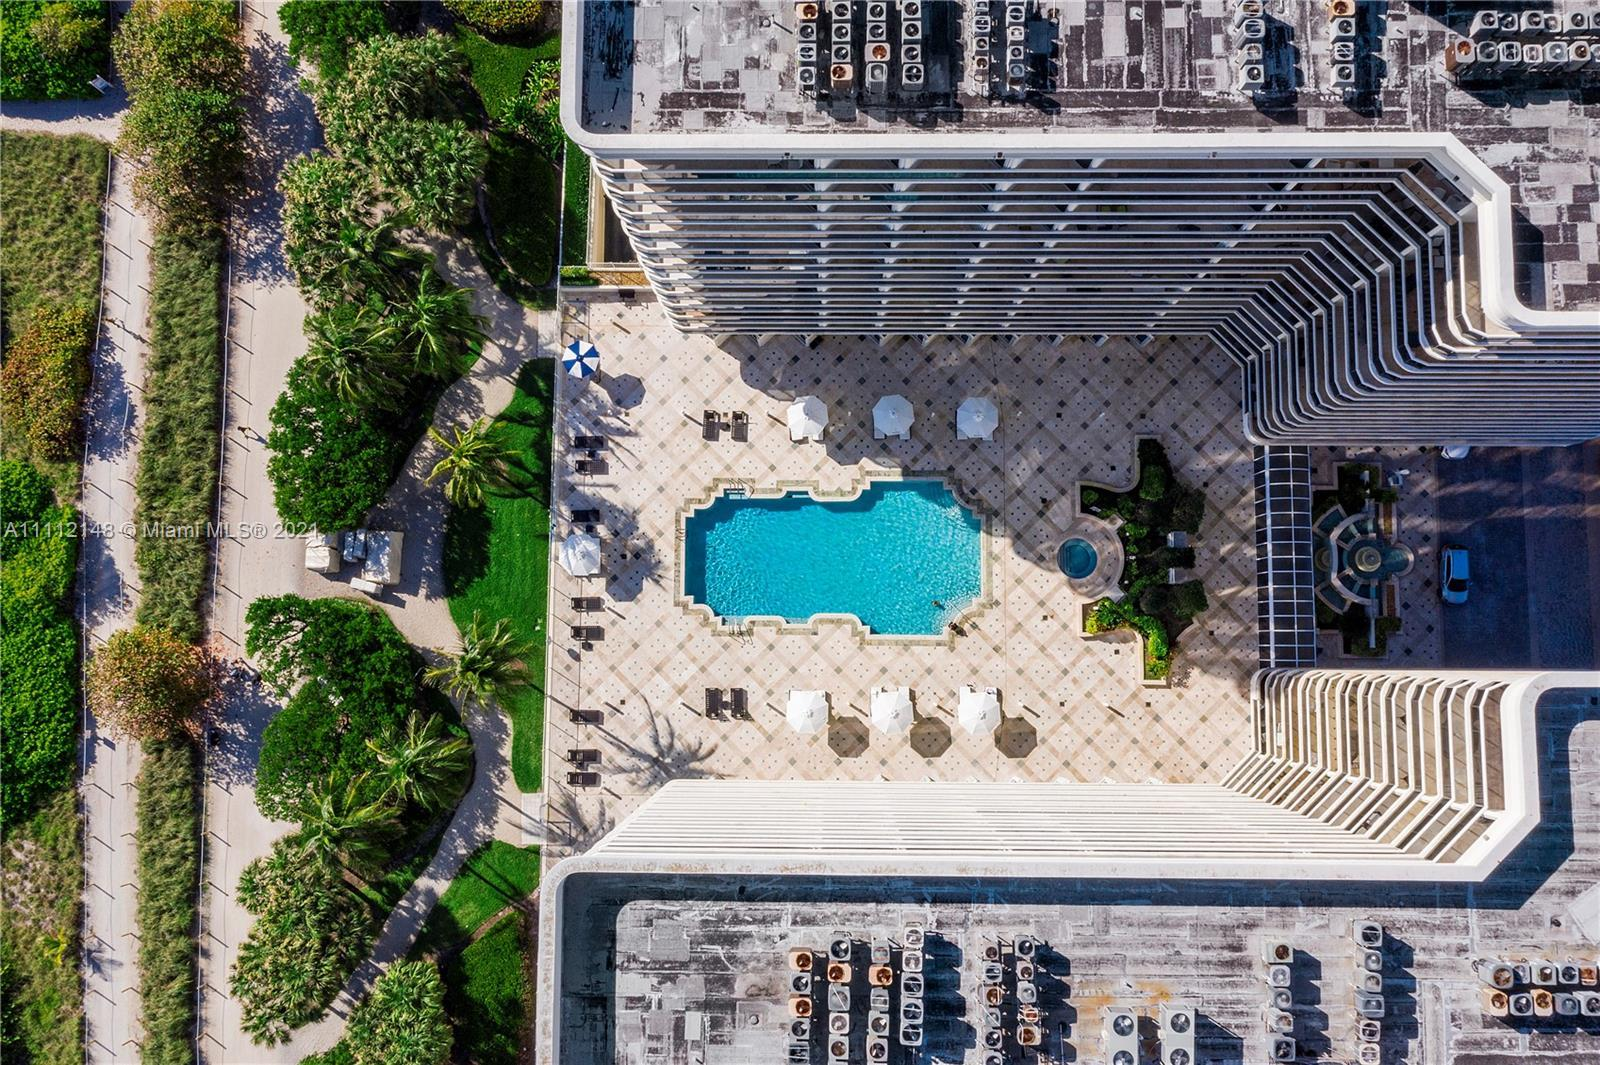 Luxury living at Solimar Oceanfront condos. Just steps away from the famous Bal Harbour Shops, resta